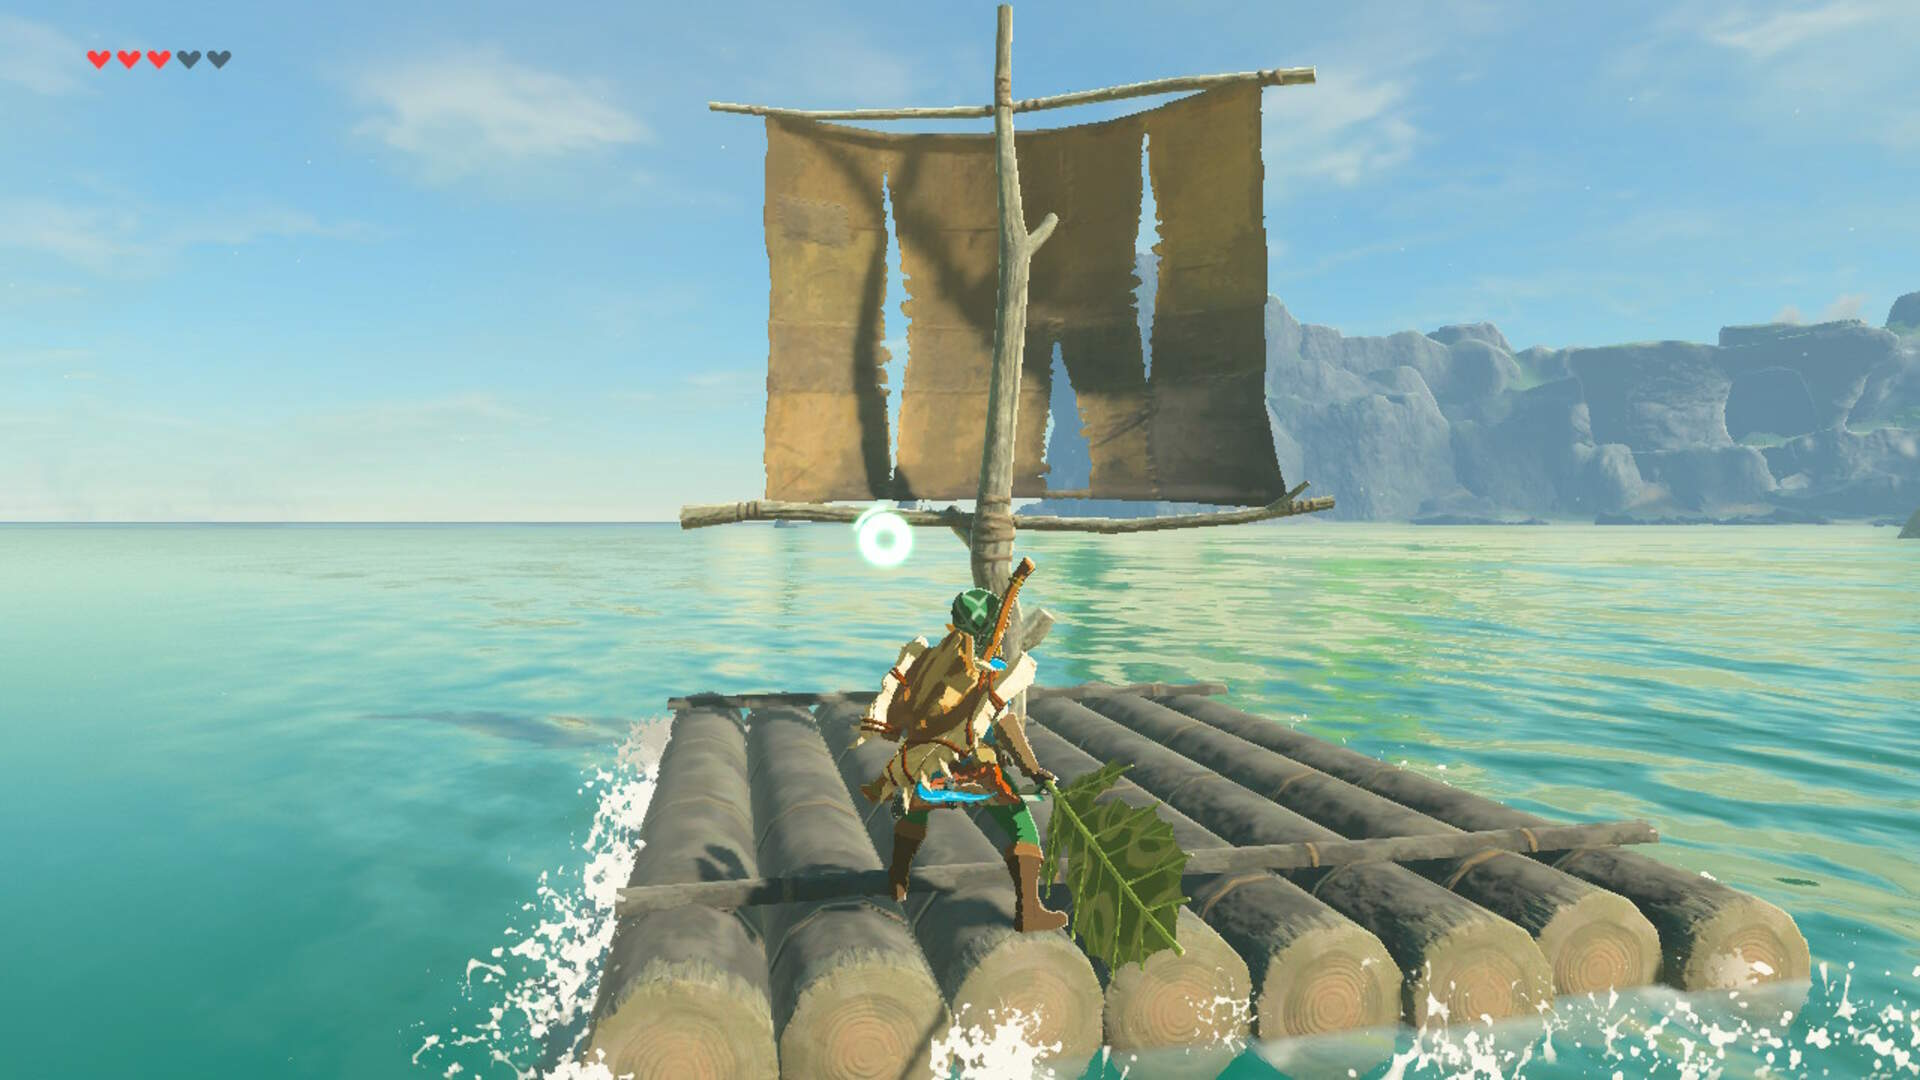 Breath of the Wild Player Finds Haunting New Method for Fishing: Whistling